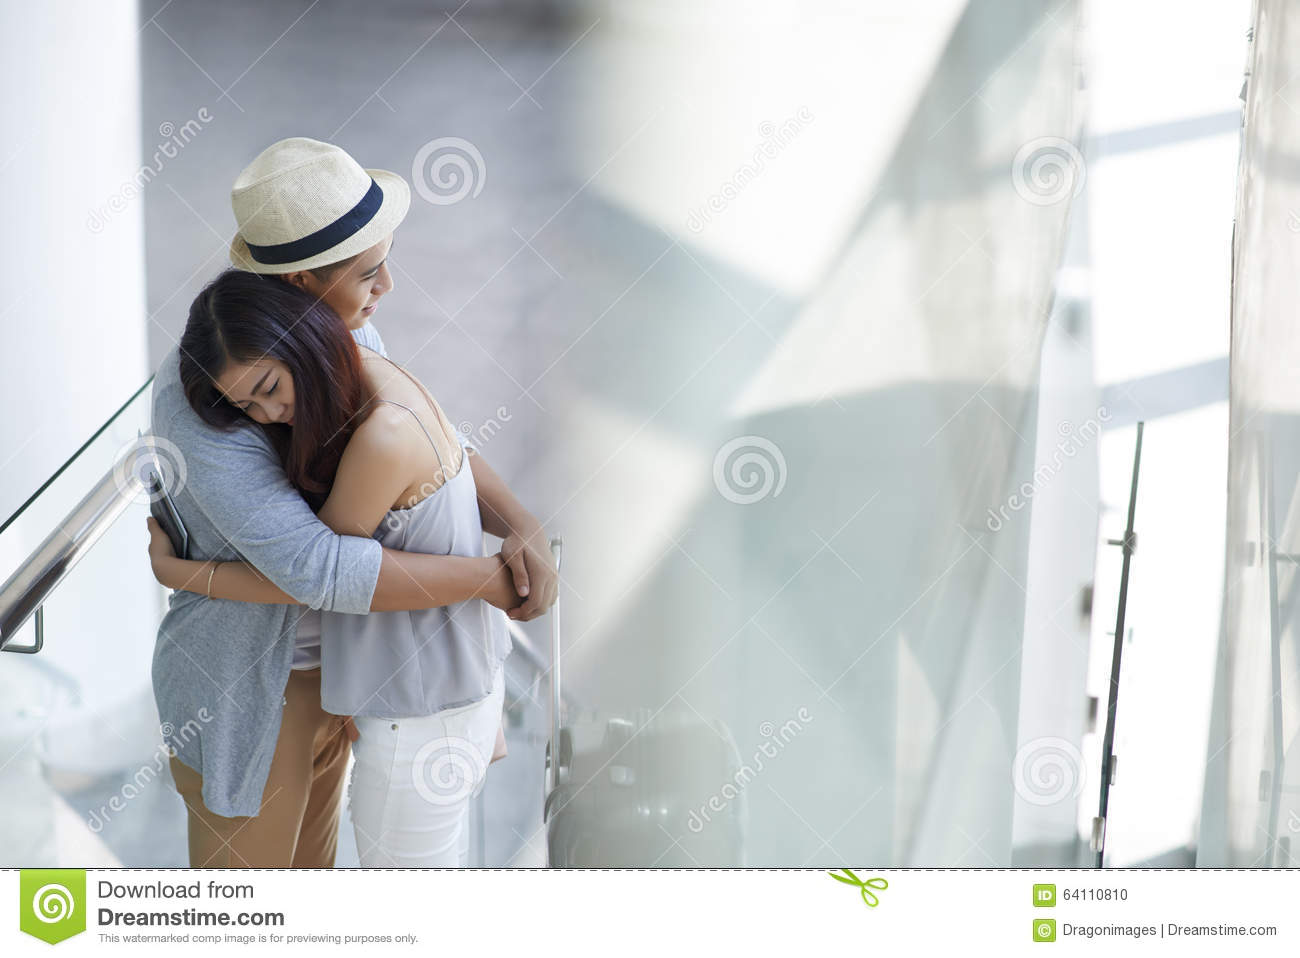 I Will Miss You Stock Photo - Image: 64110810